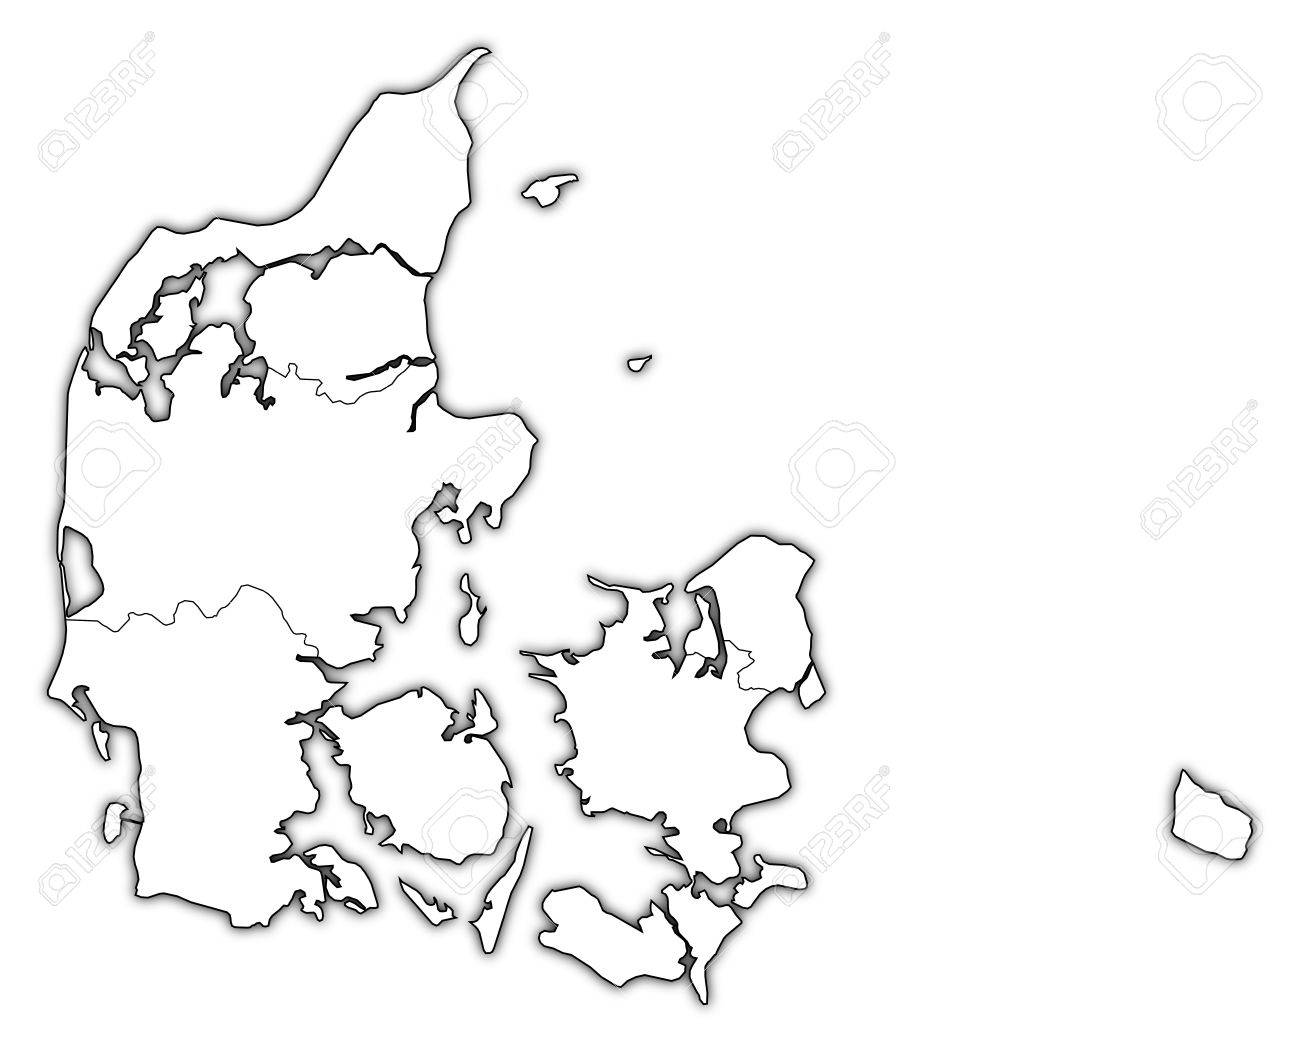 Political map of Danmark with the several regions. Stock Vector - 11566207